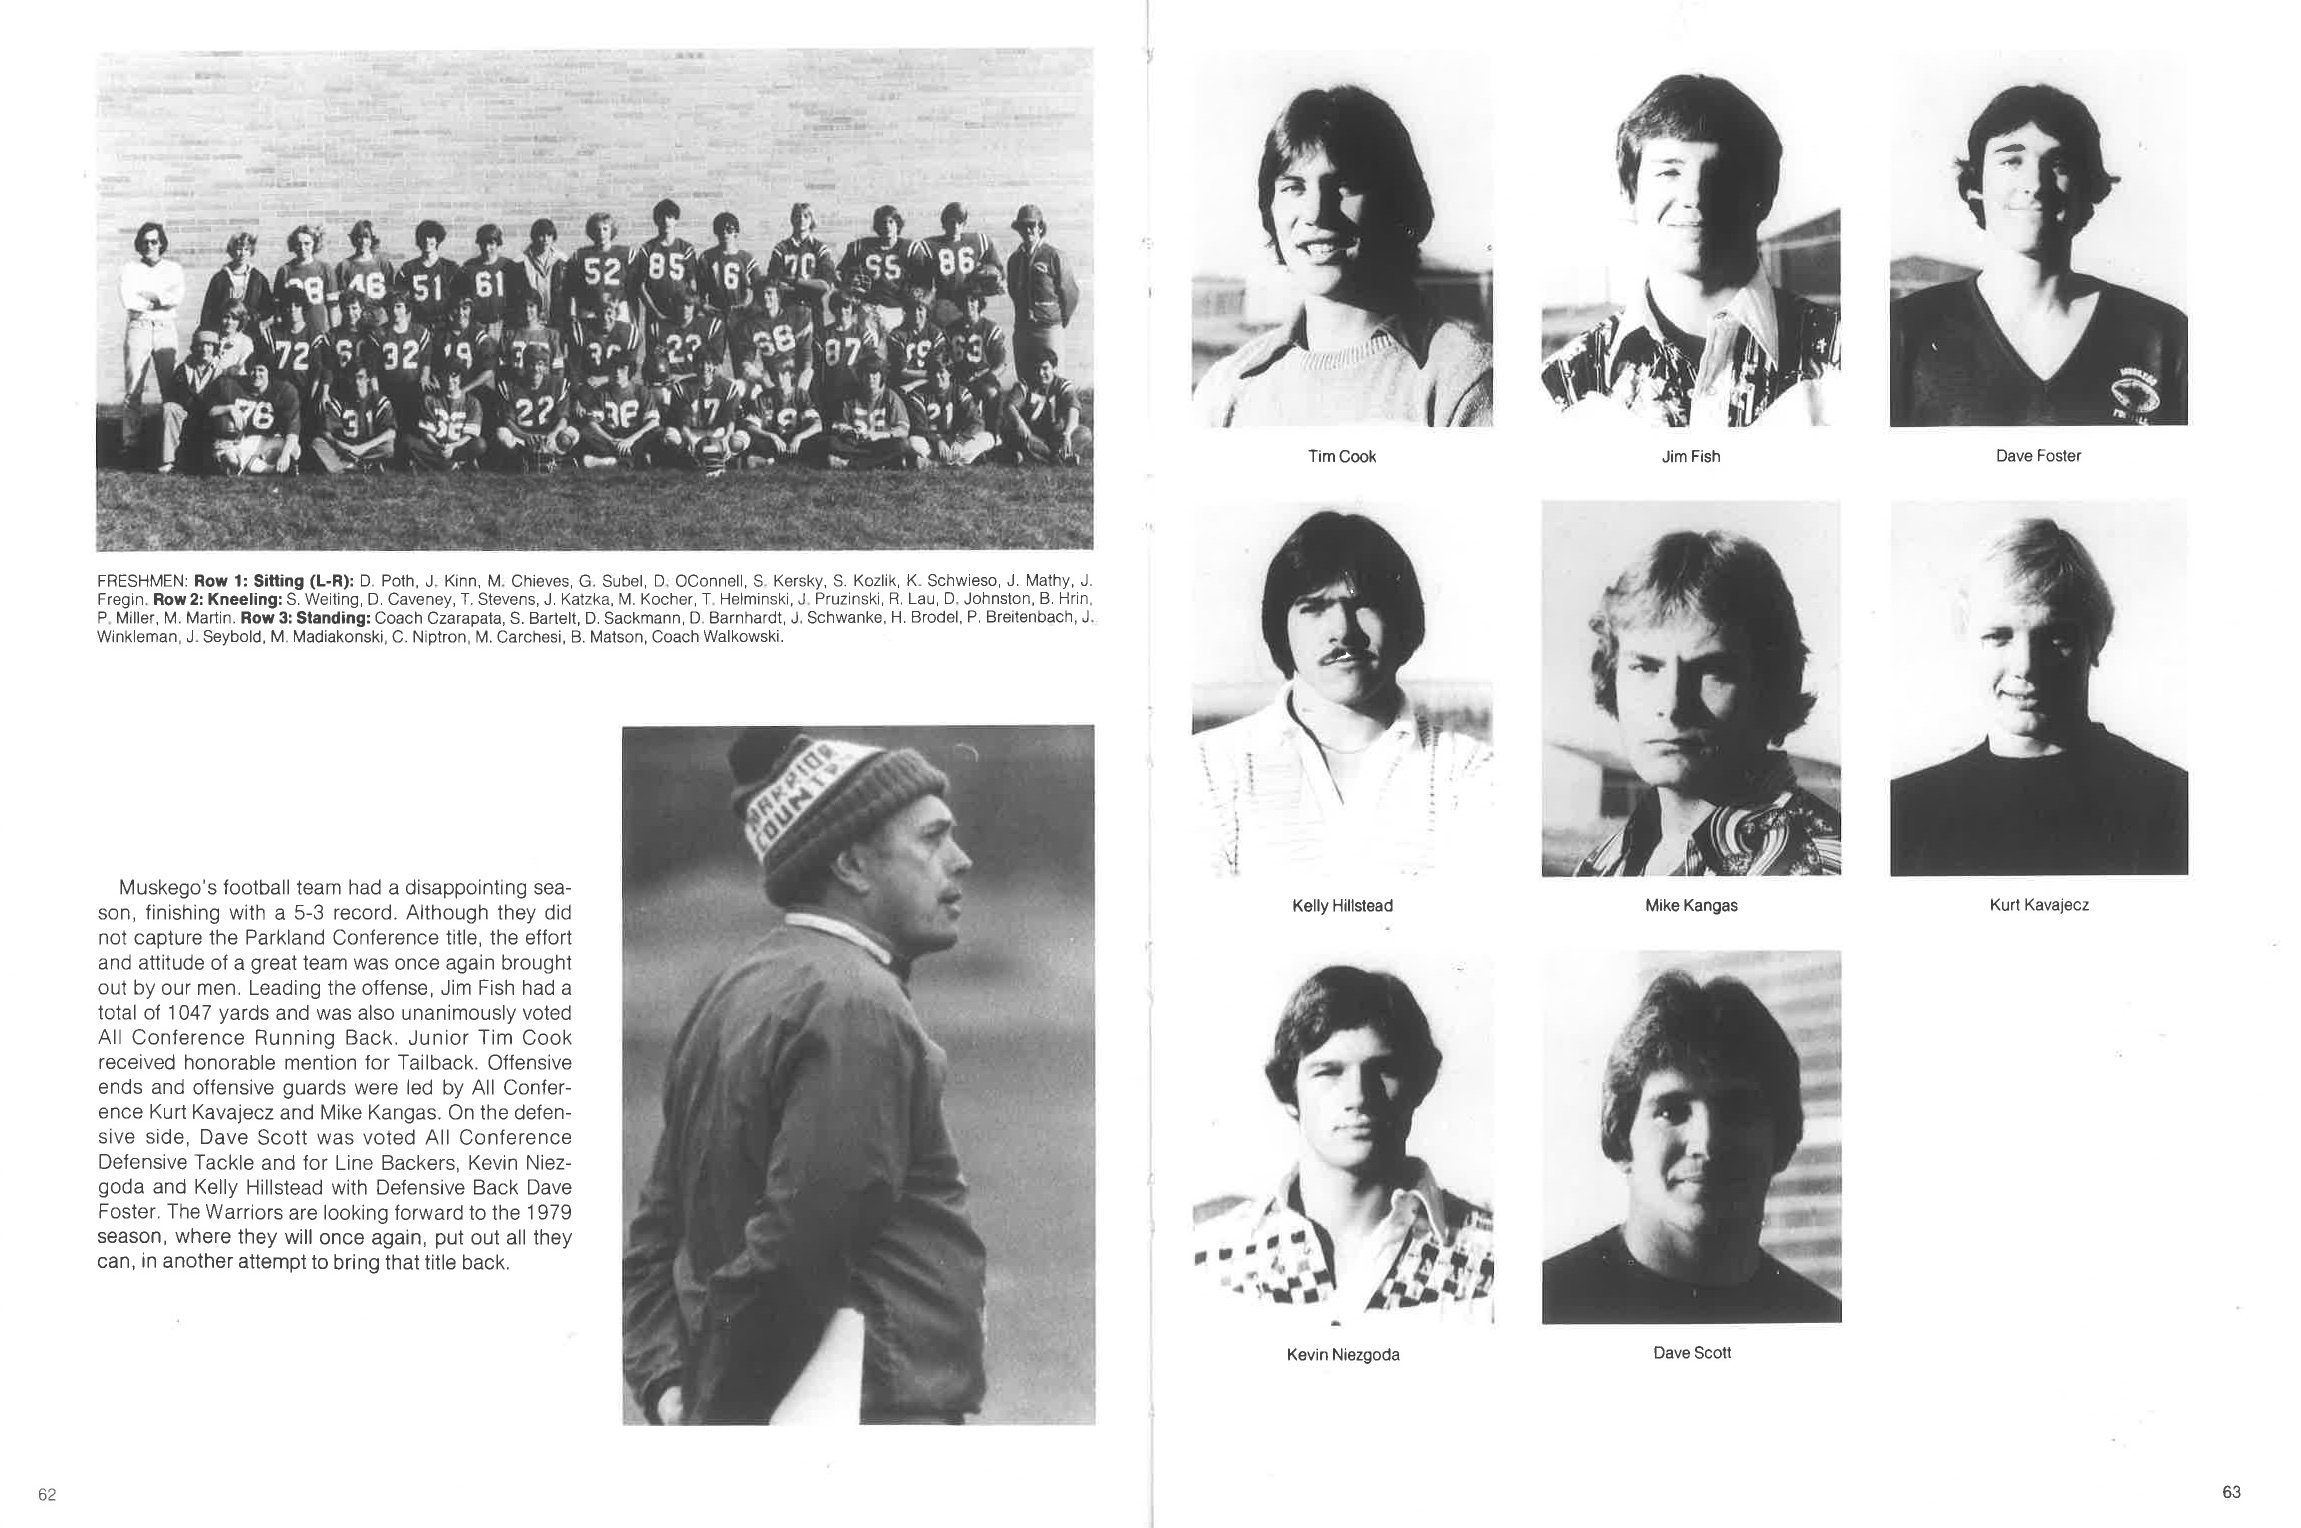 1979_Yearbook_62.jpg